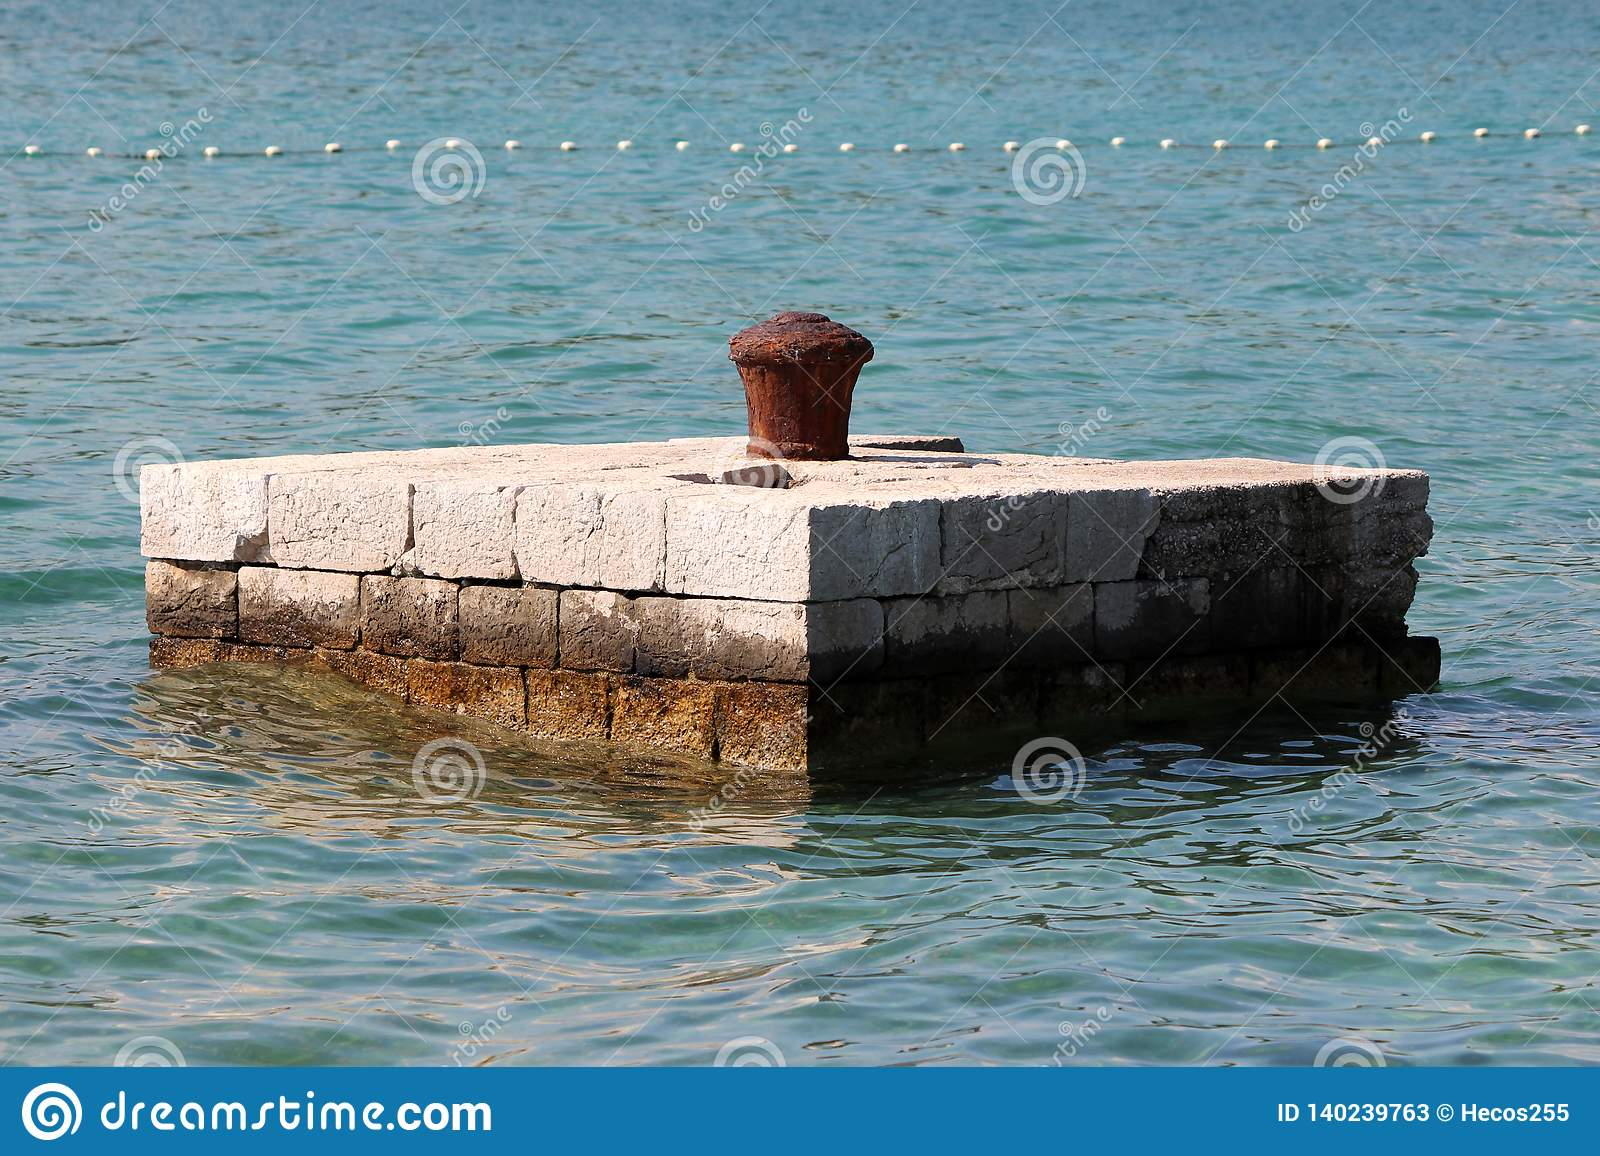 Completely rusted dilapidated iron mooring bollard in middle of stone pier surrounded with calm sea used for tying larger ships